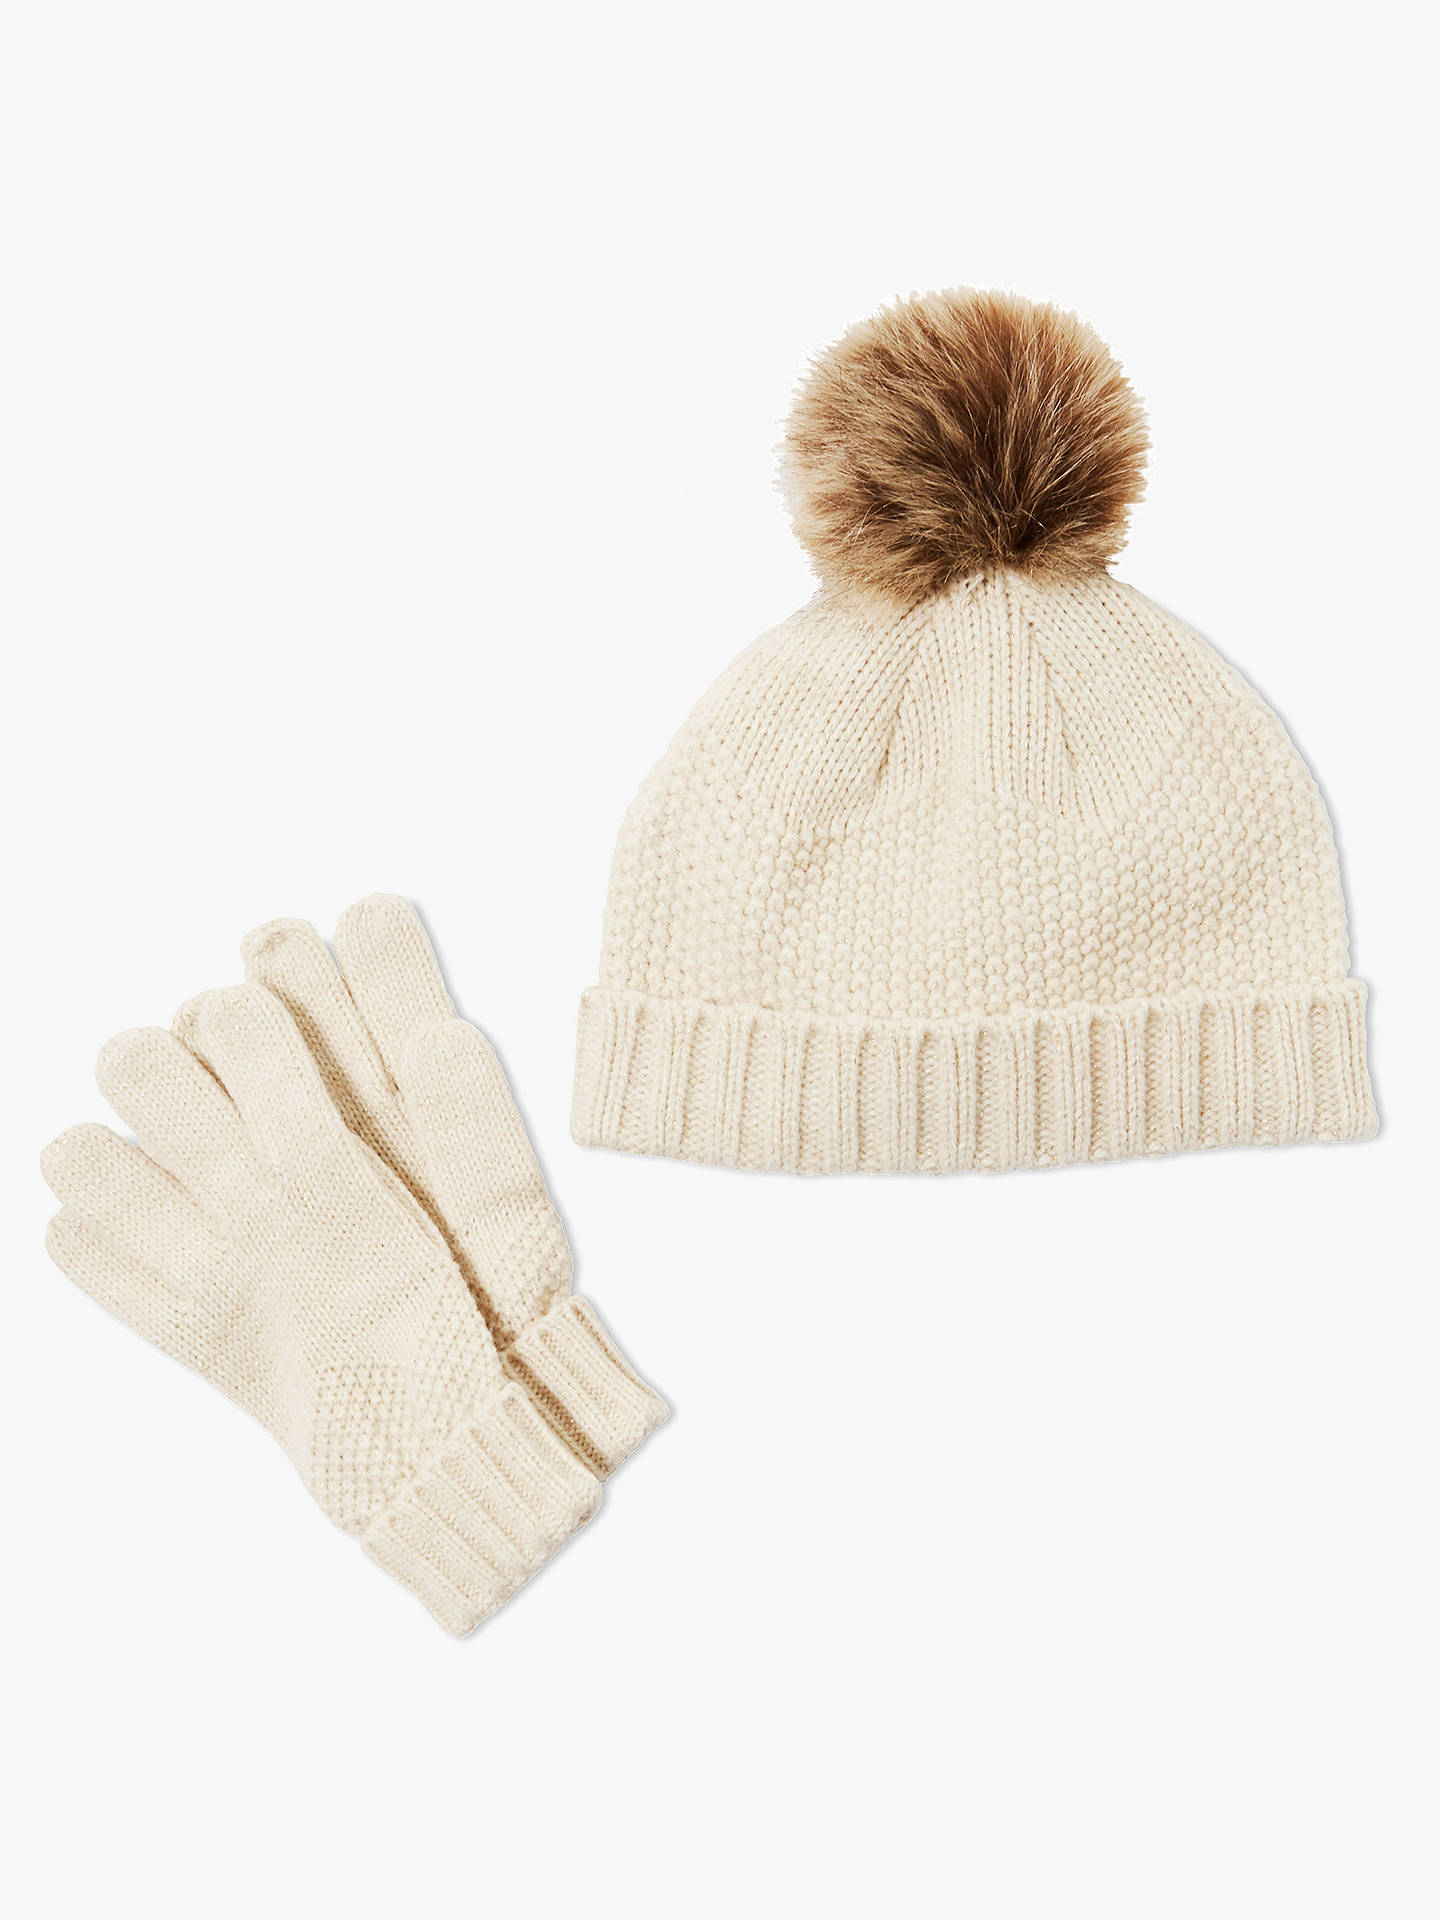 Buy John Lewis & Partners Children's Beanie And Gloves Set, Cream, 3-5 years Online at johnlewis.com